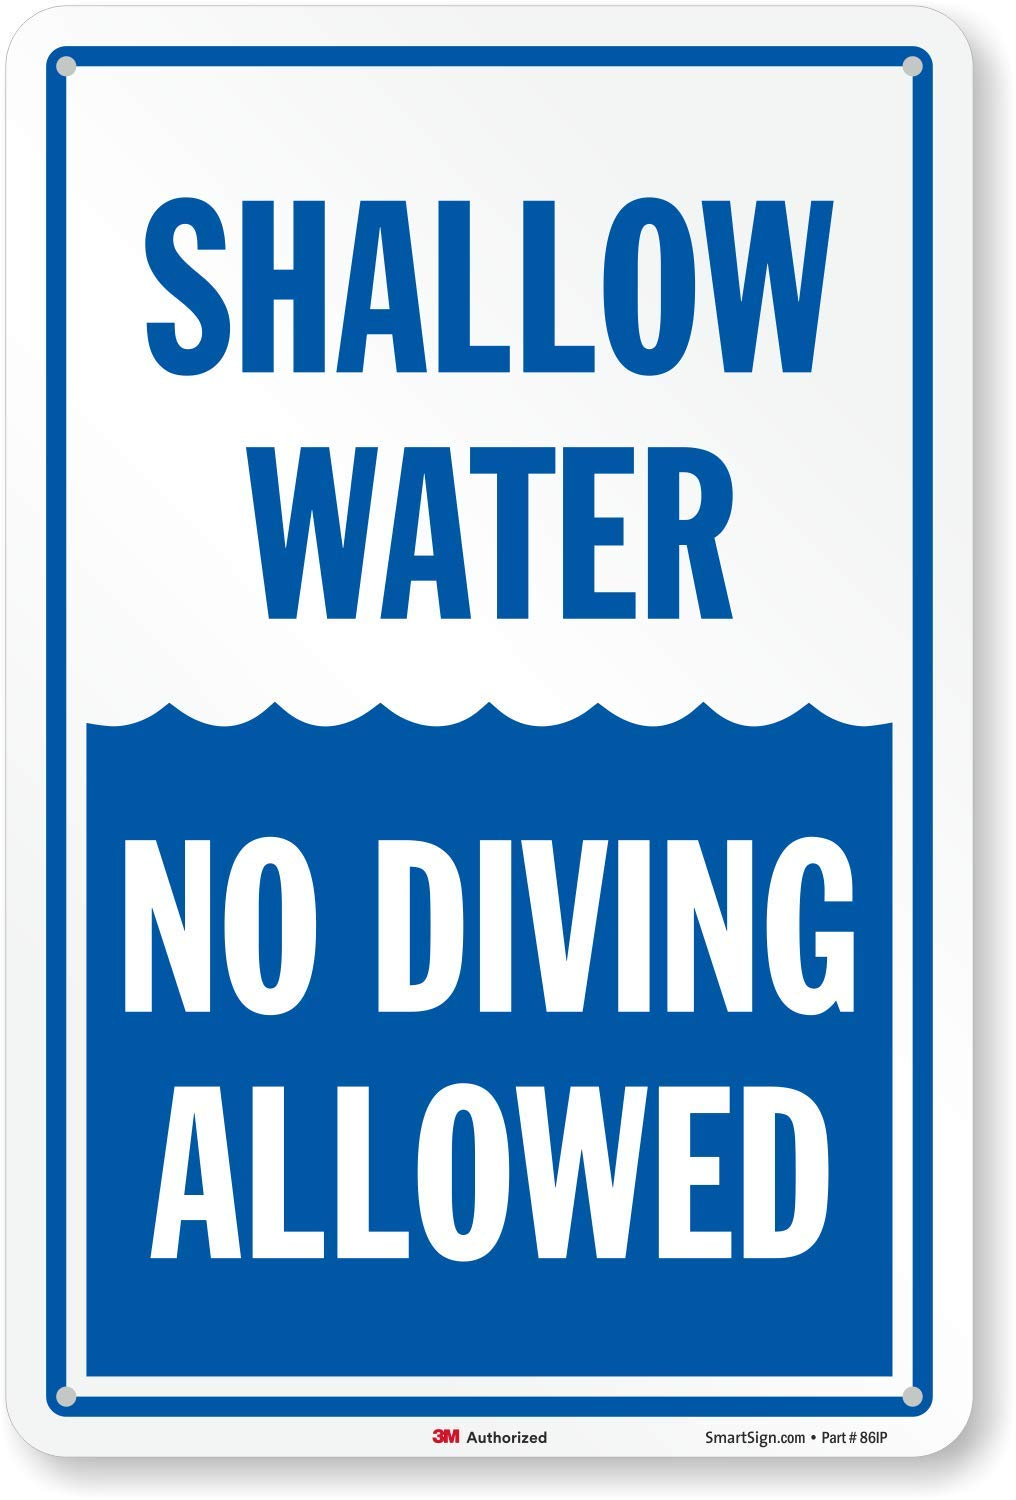 Shallow Water No Diving Allowed Sign, 18'' x 12'' by SmartSign